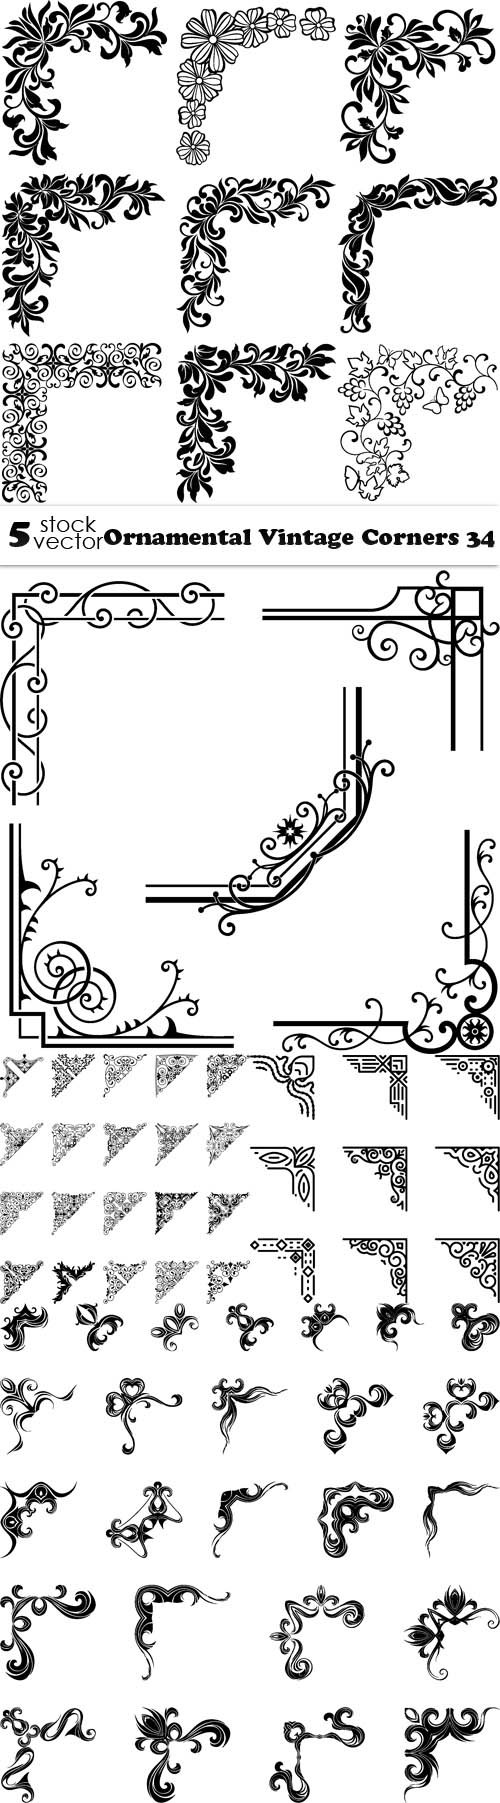 Vectors - Ornamental Vintage Corners 34